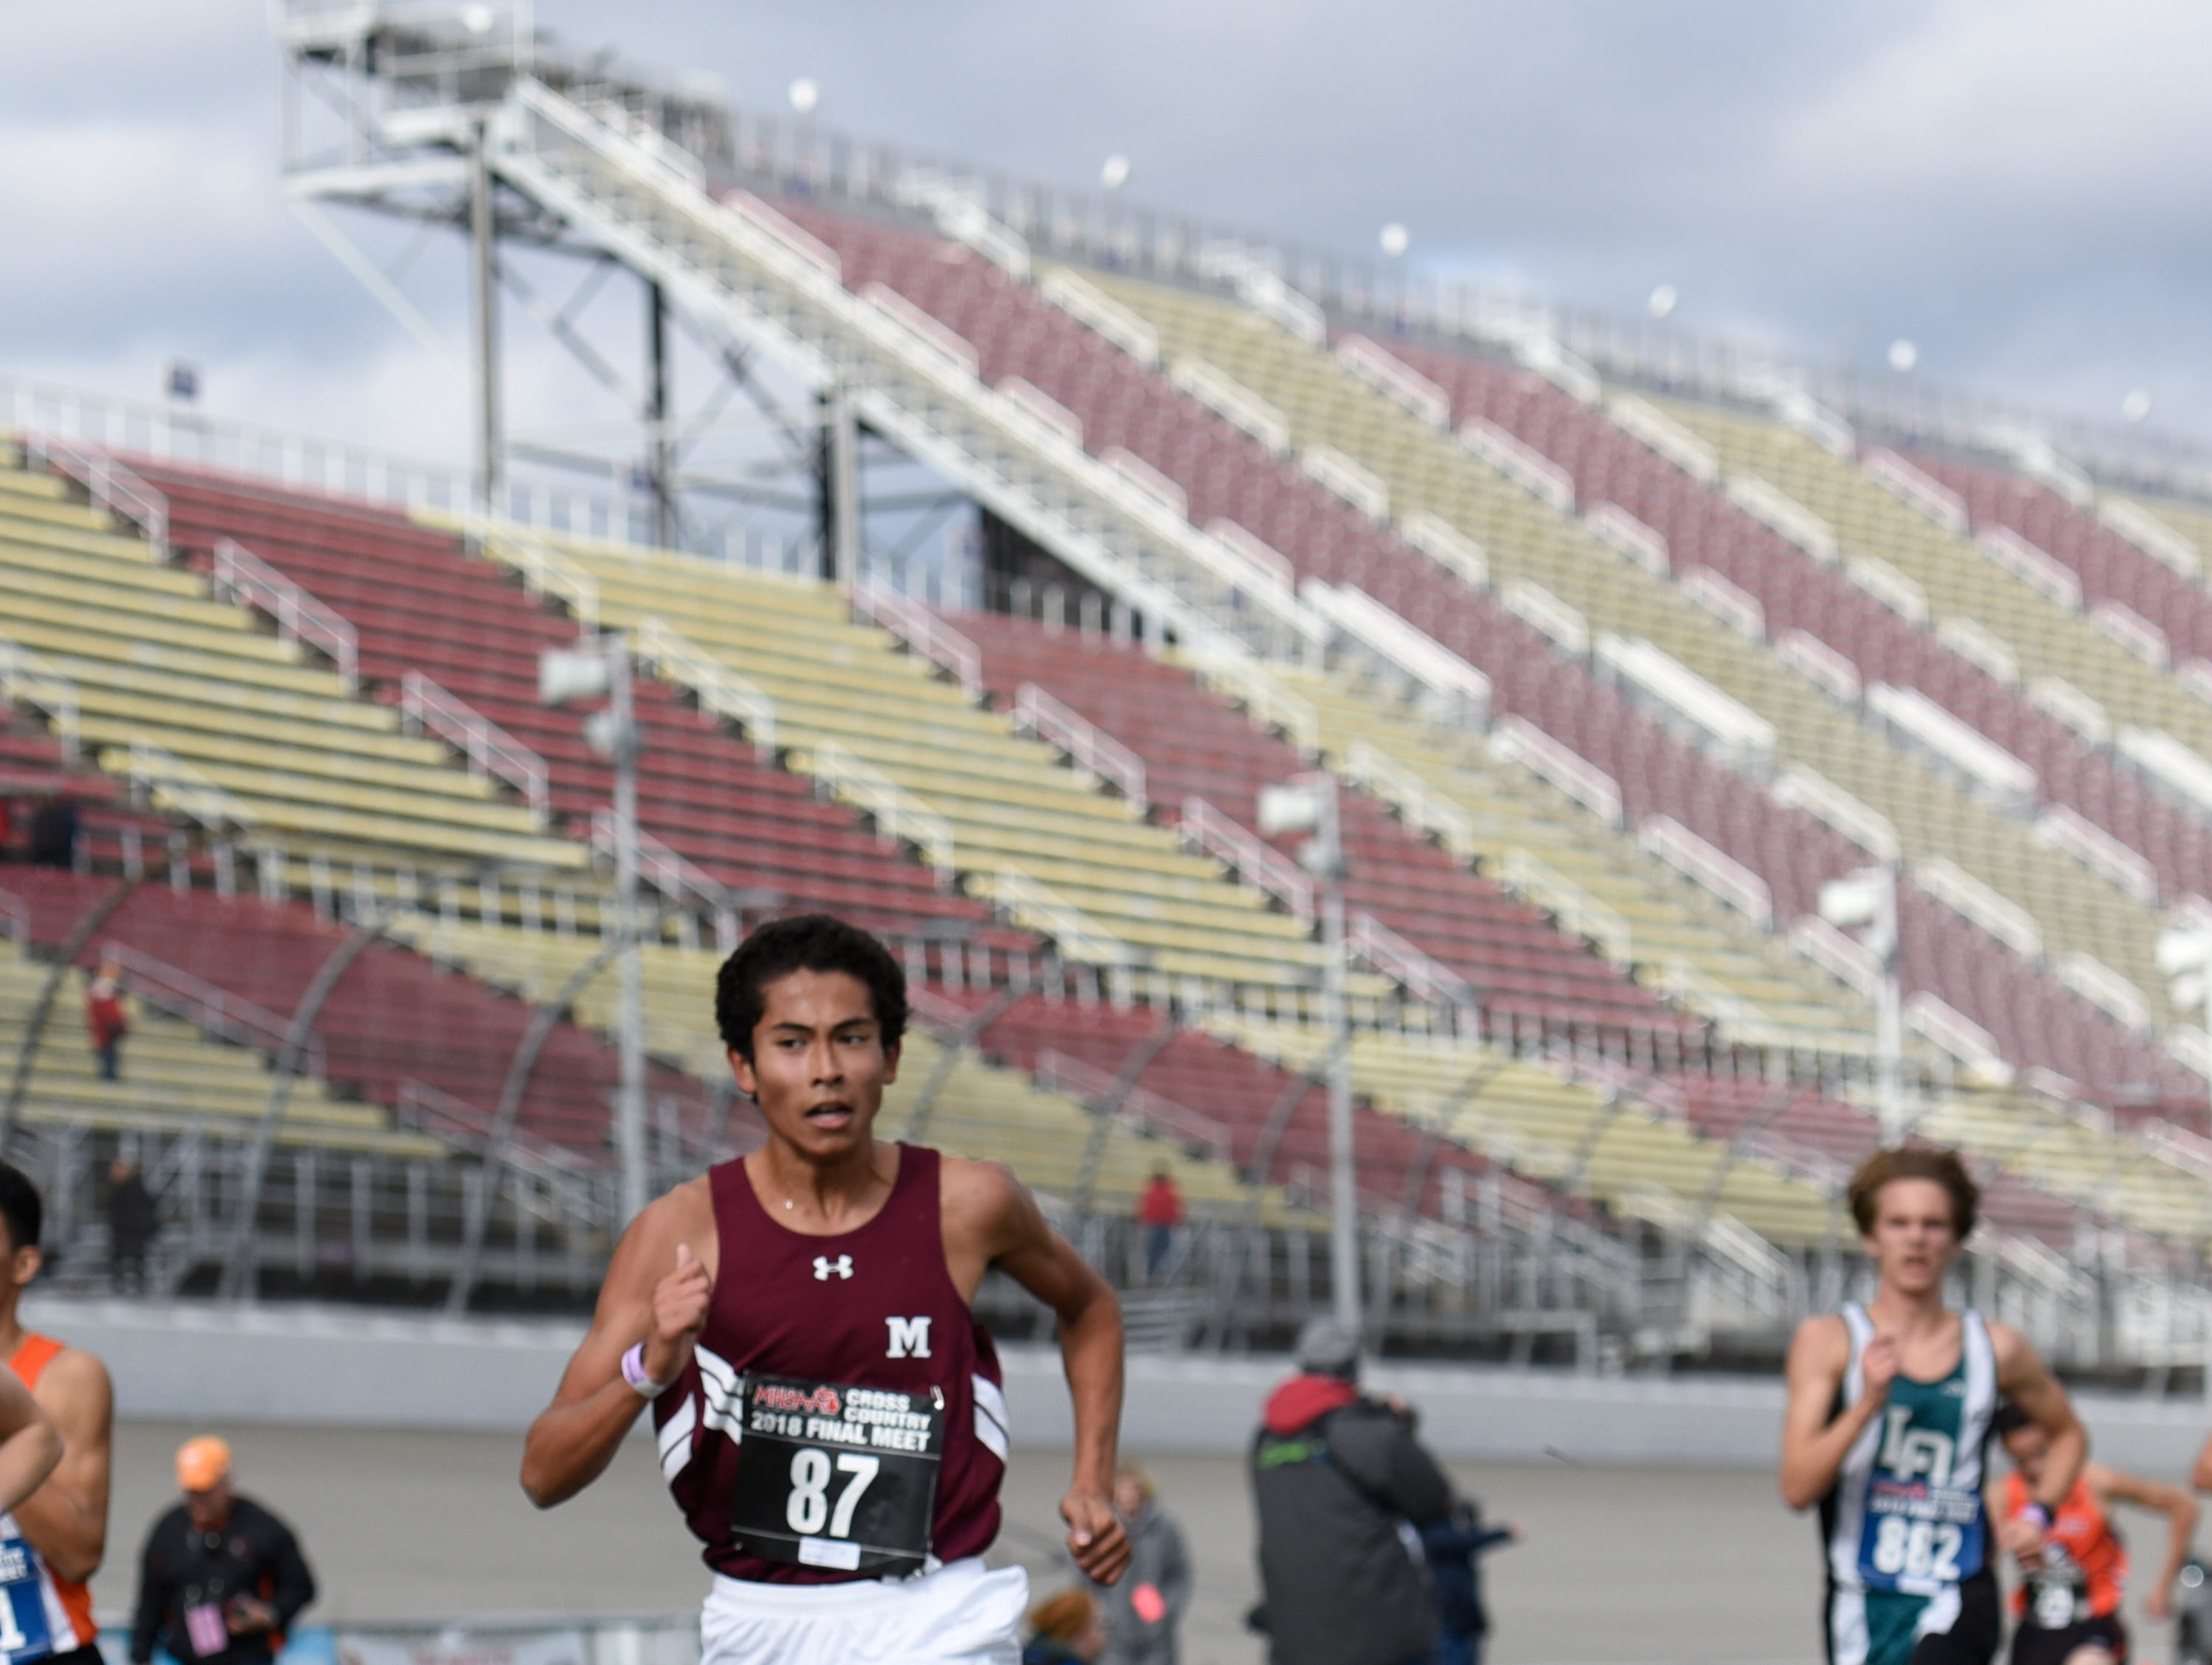 Milford's Kazuma Bowring during the Division 1 2018 cross country finals at Michigan International Speedway.